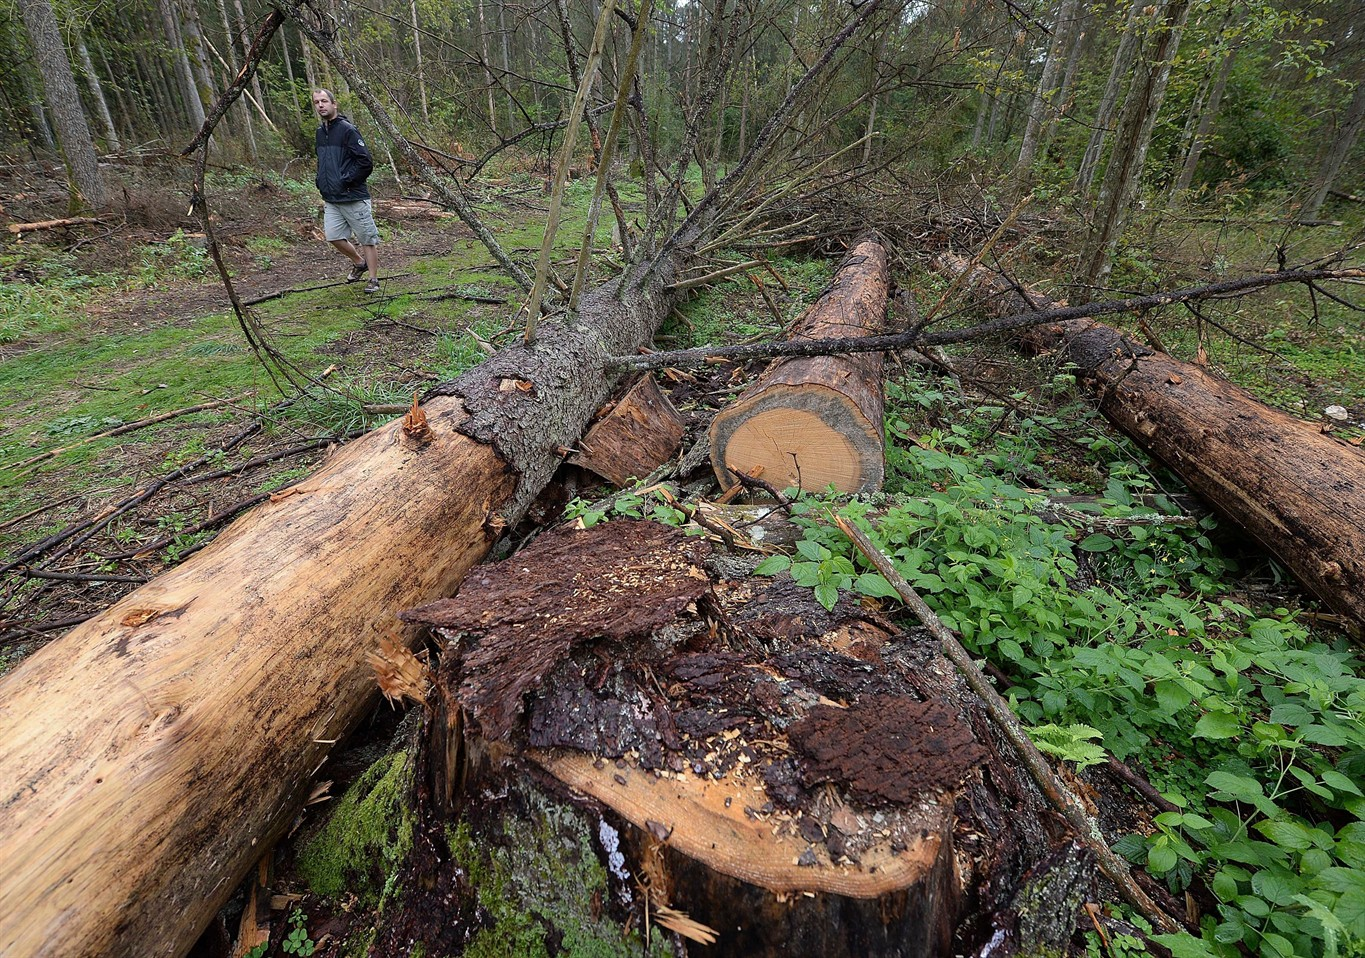 EU Court: Poland's Forest Management Led to Partial Loss of Bialowieza Site